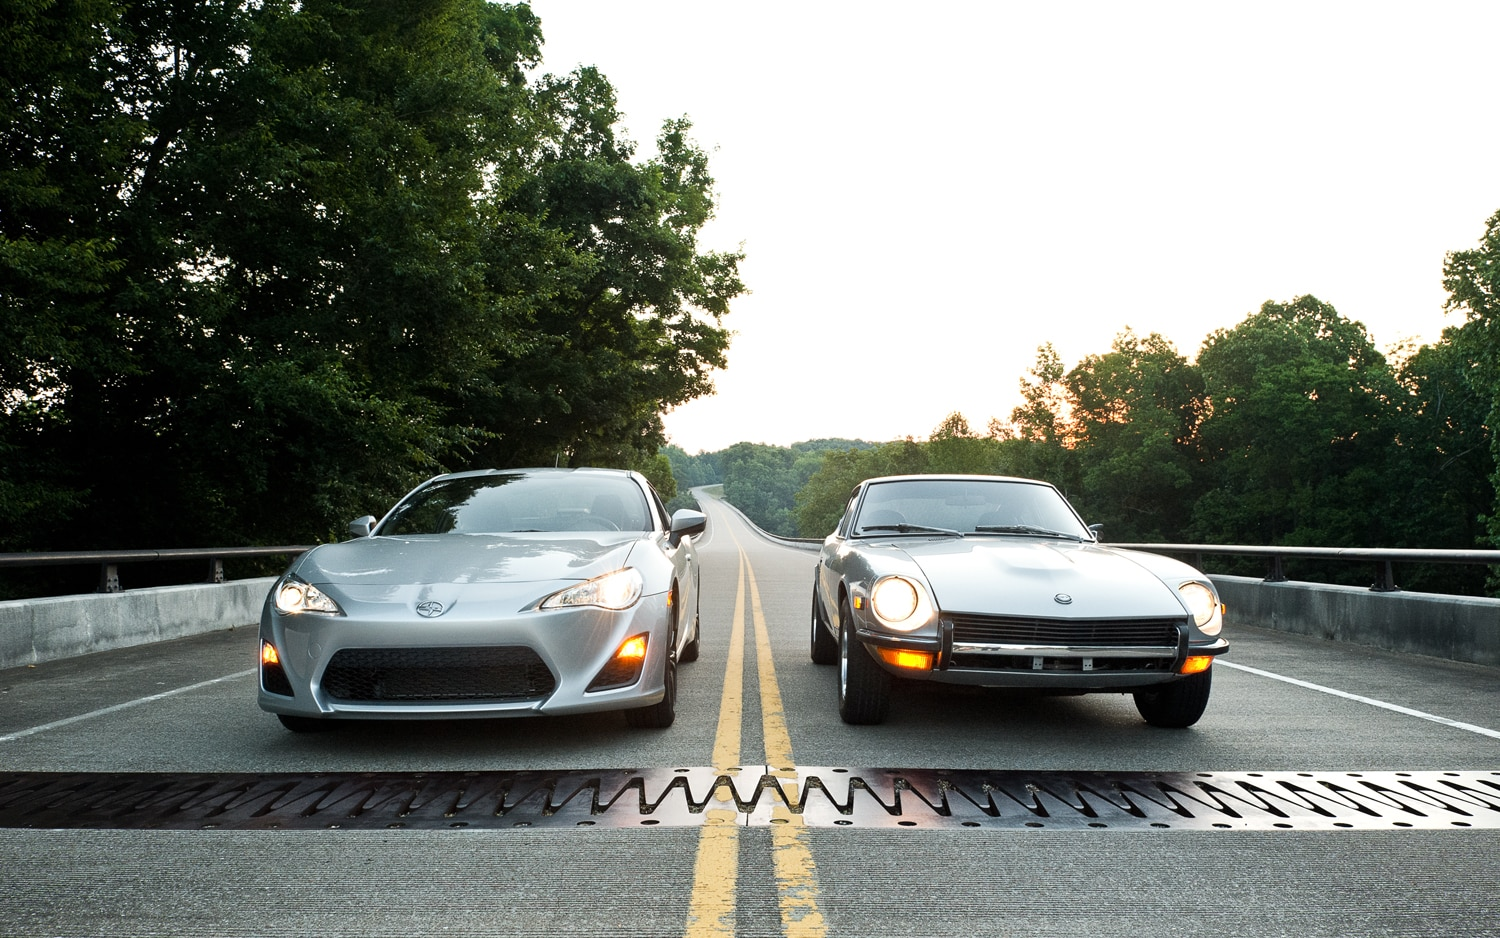 1971 Datsun 240Z And 2013 Scion FR S Front View1